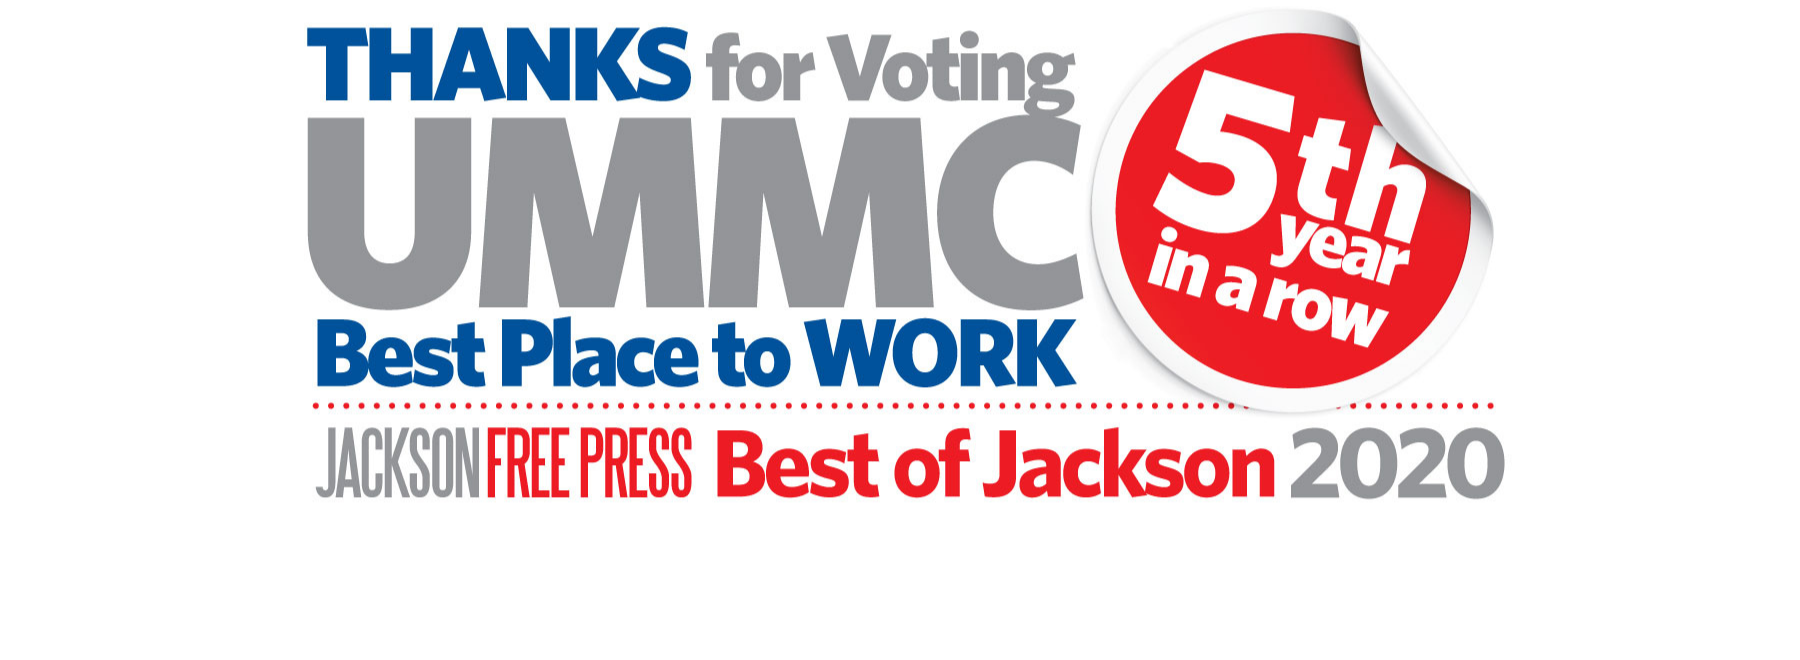 Thanks for voting UMMC Best Place to Work 5th Year in a row. Jackson Free Press Best of Jackson 2020.